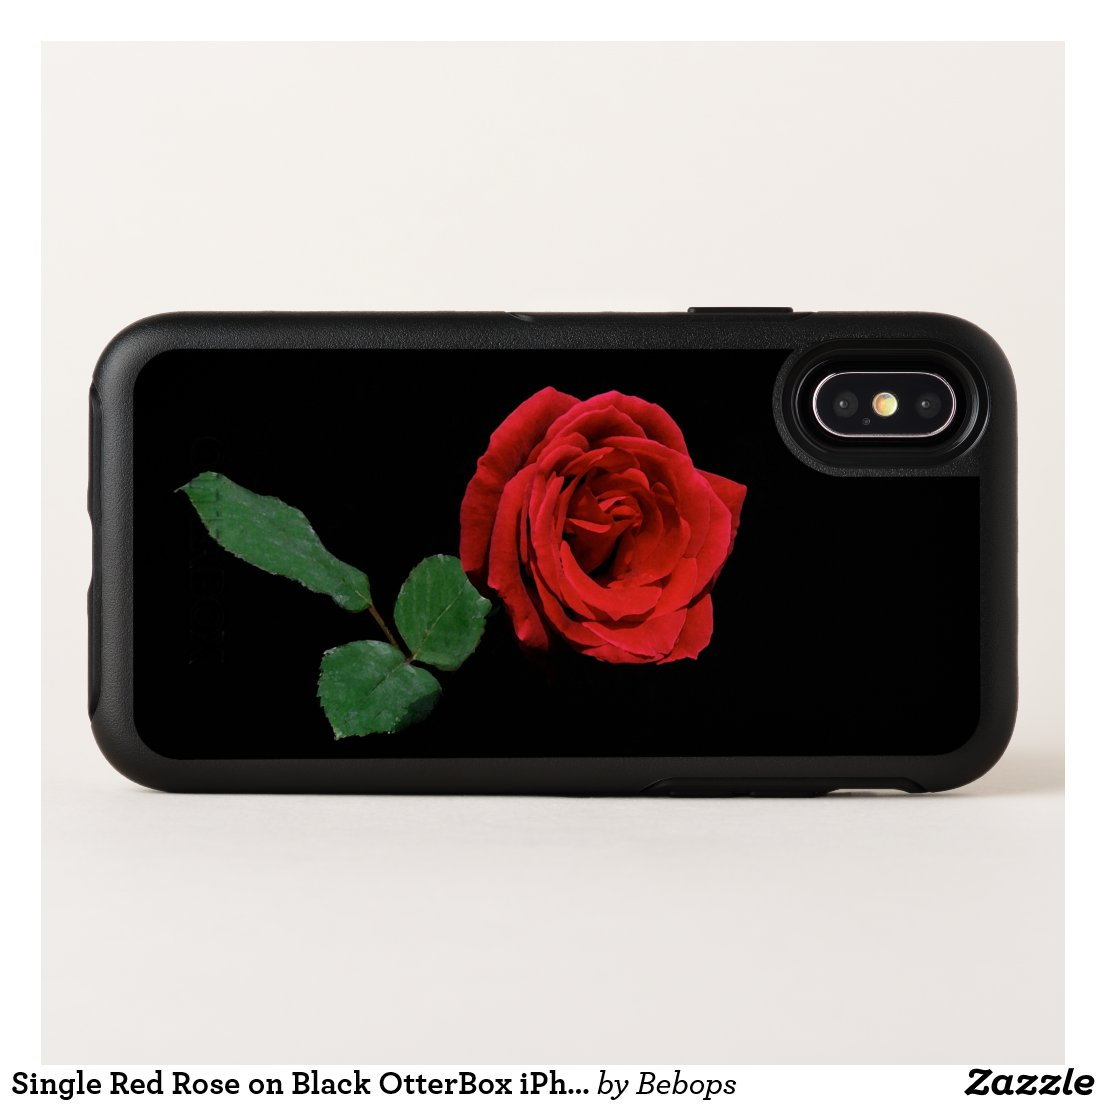 Single Red Rose on Black OtterBox iPhone X Case